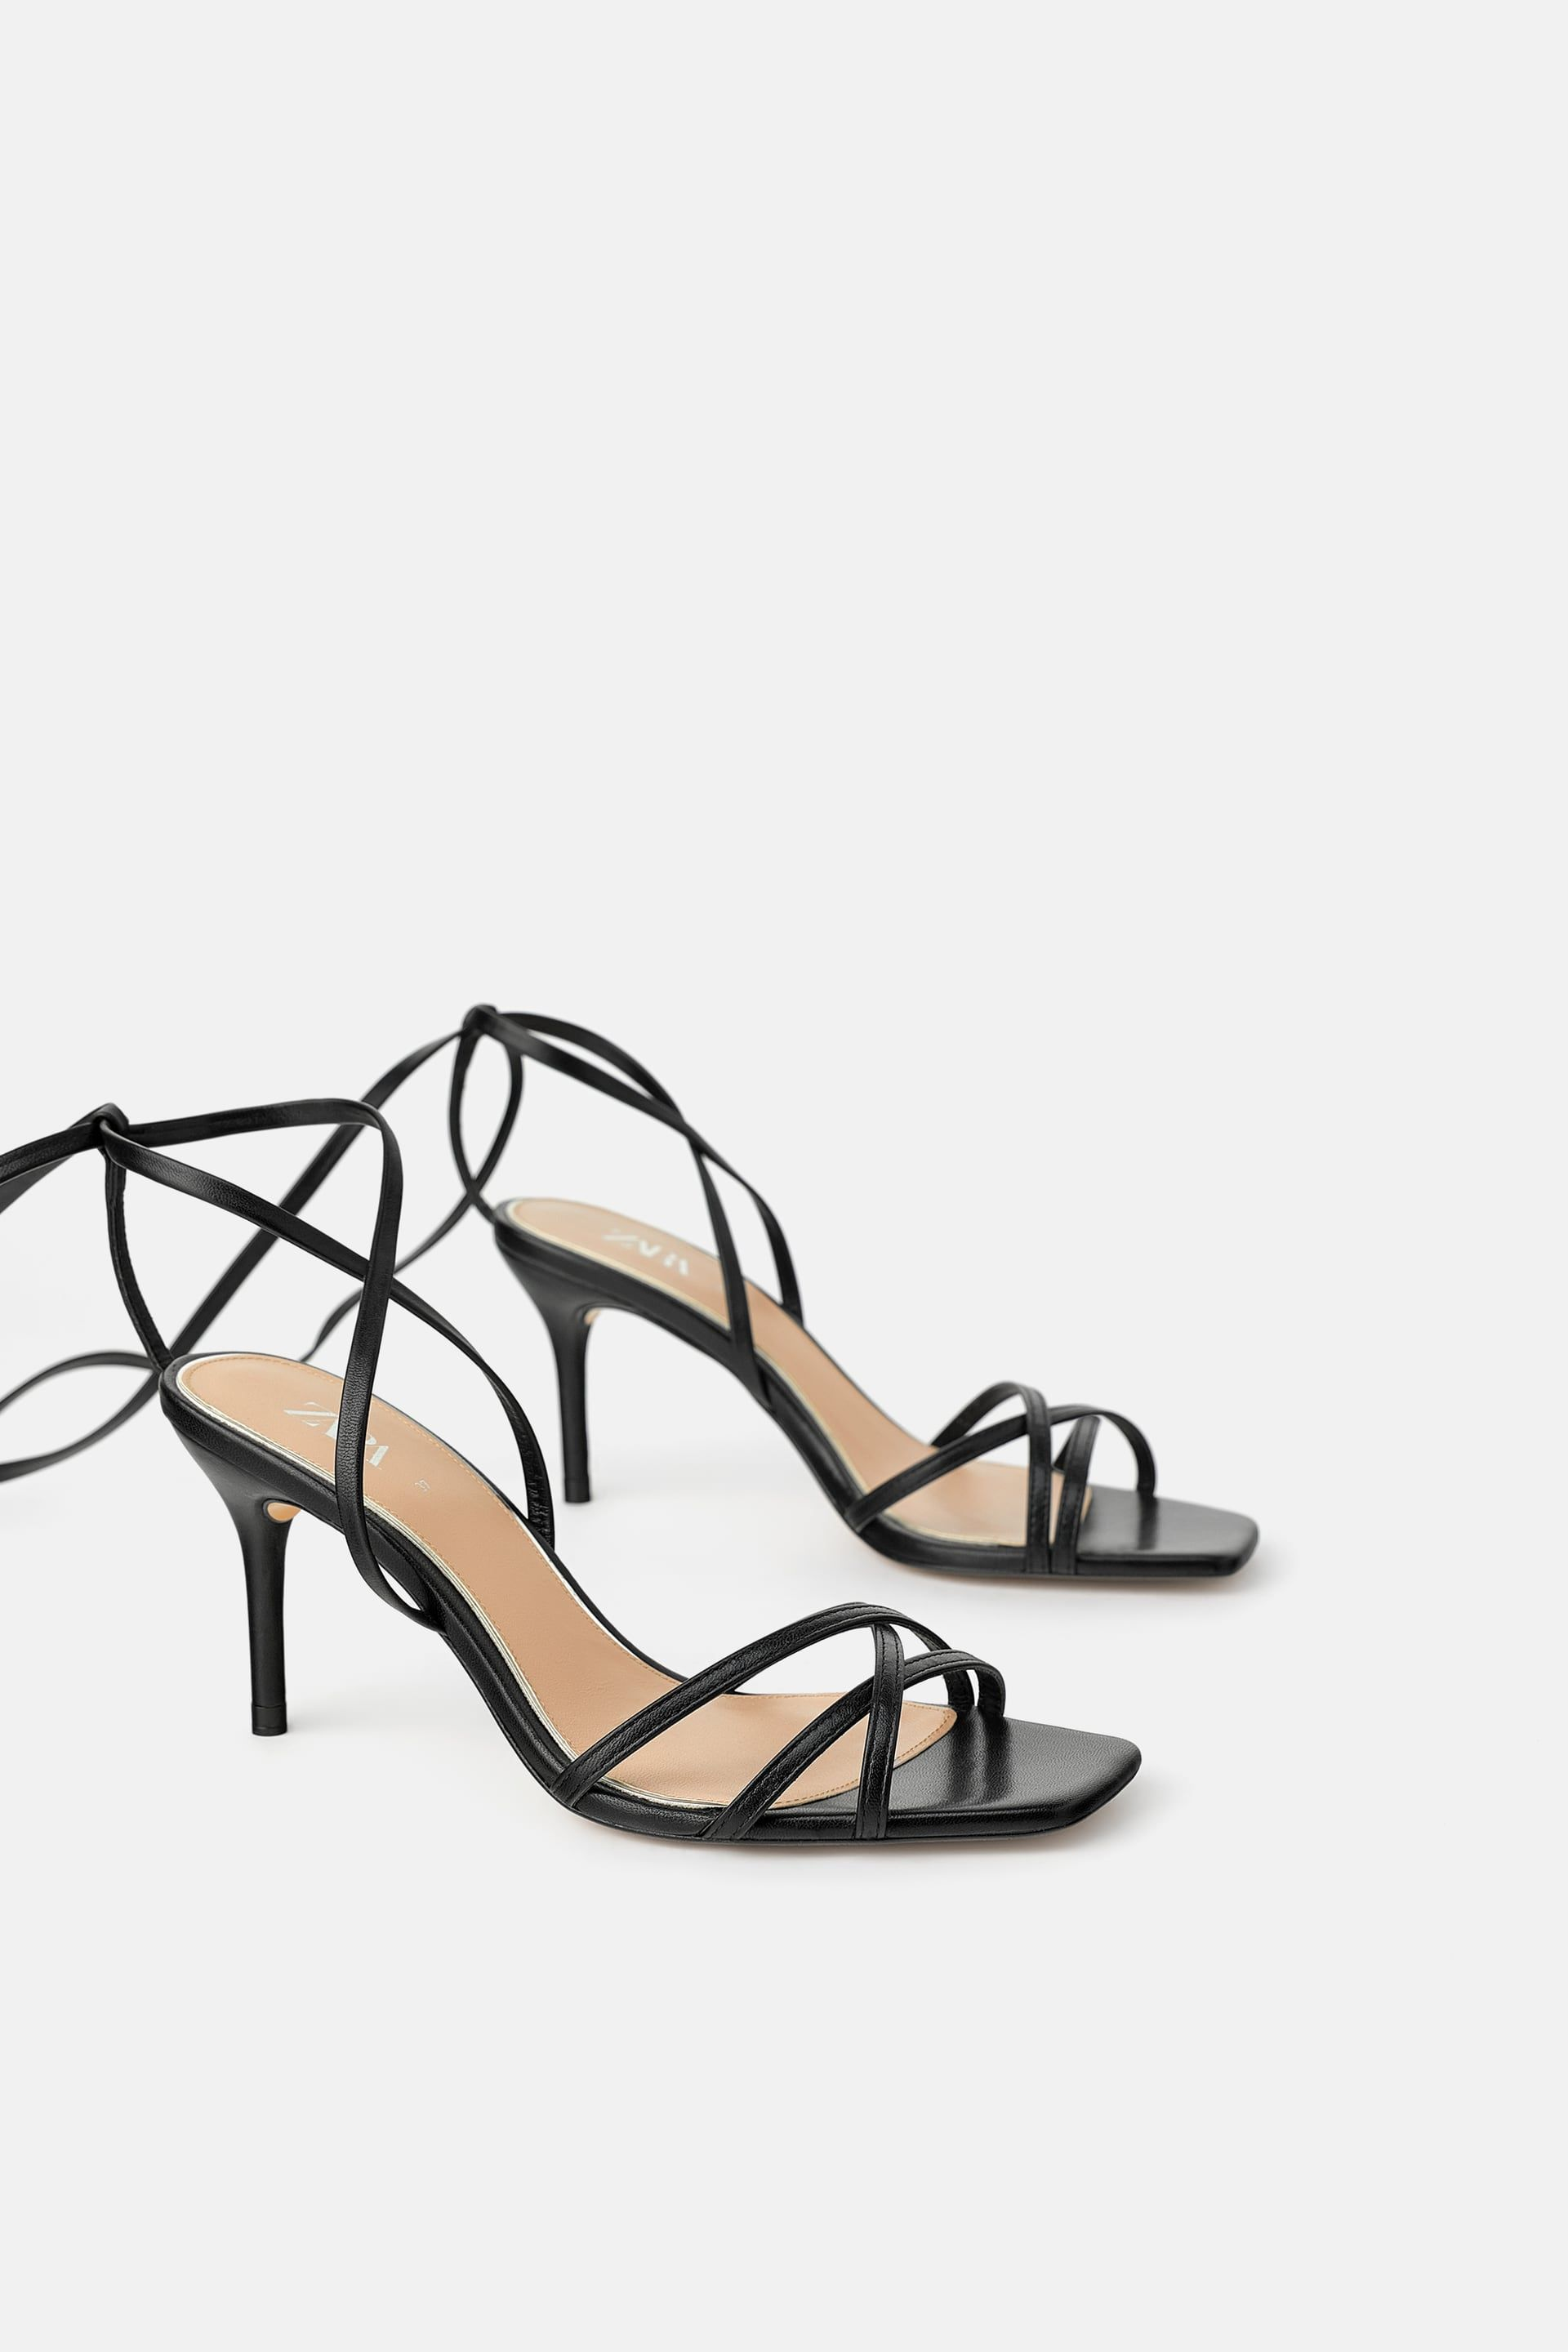 LEATHER HIGH HEELED STRAPPY SANDALS